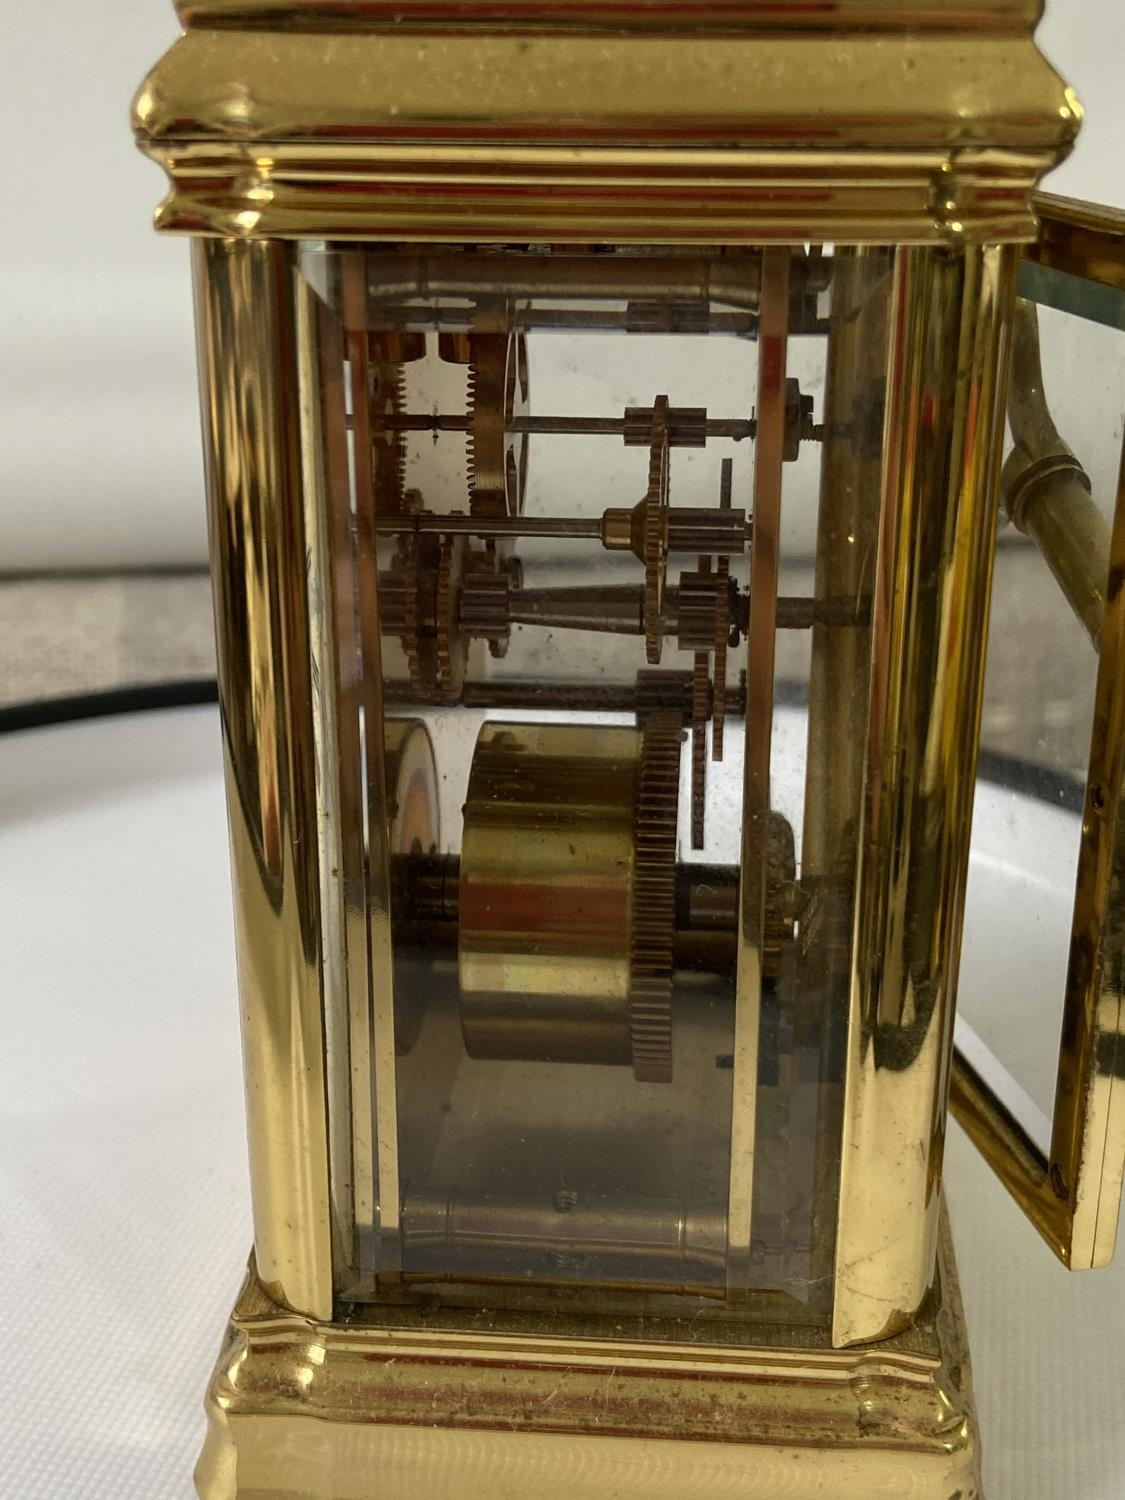 Antique heavy brass carriage clock [Rapport London] [MVT No 1800] in a working condition and with - Image 9 of 12